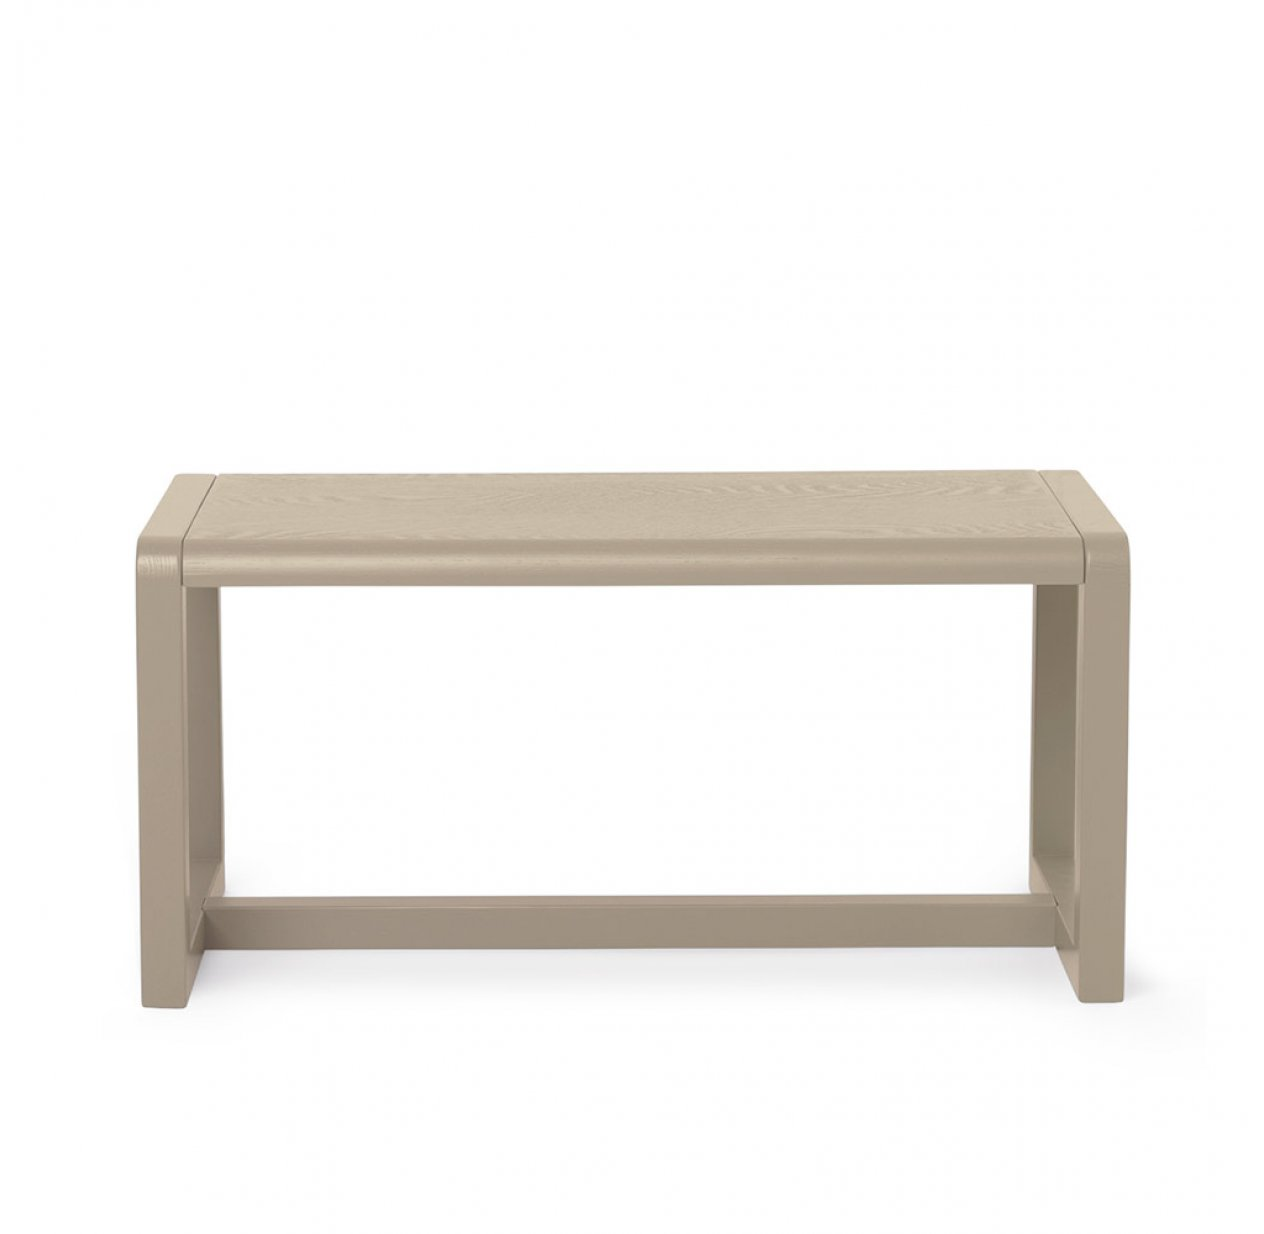 Banc Little Architect - Cachemire